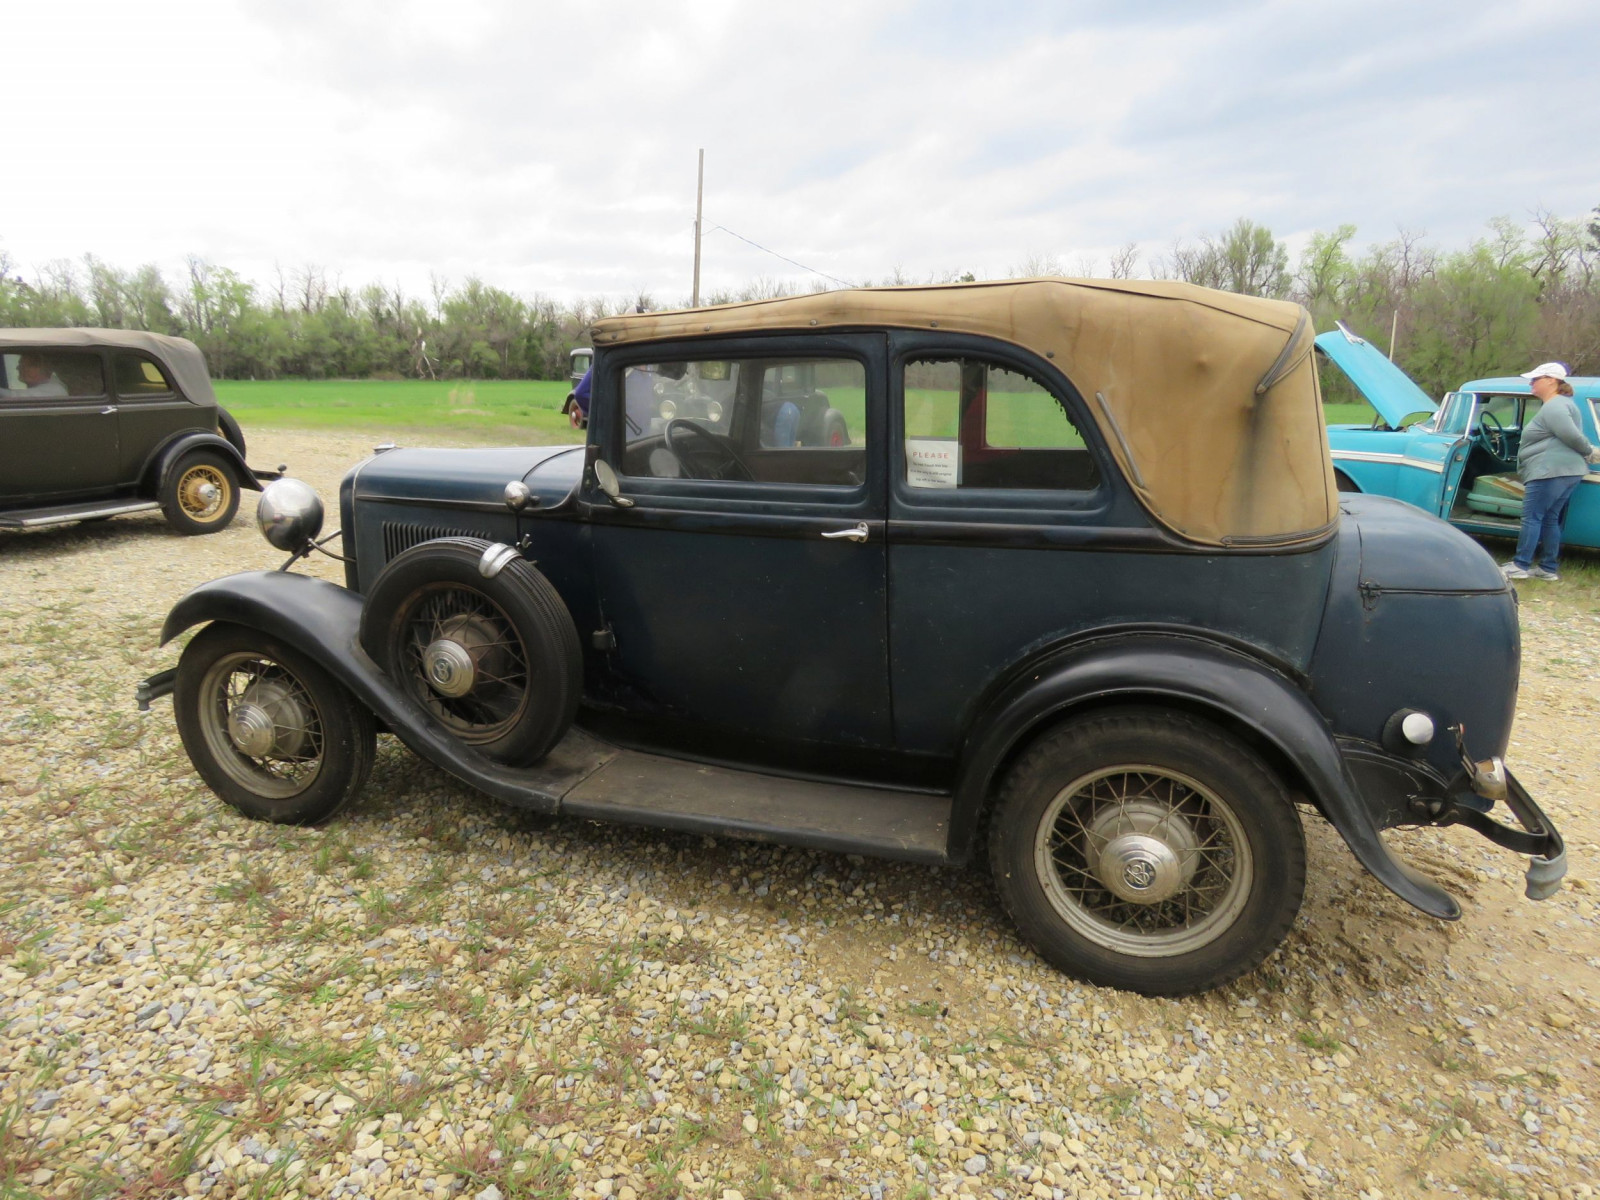 RARE 1932 FORD B400 2DR CONVERTIBLE V8 SEDAN - Image 9